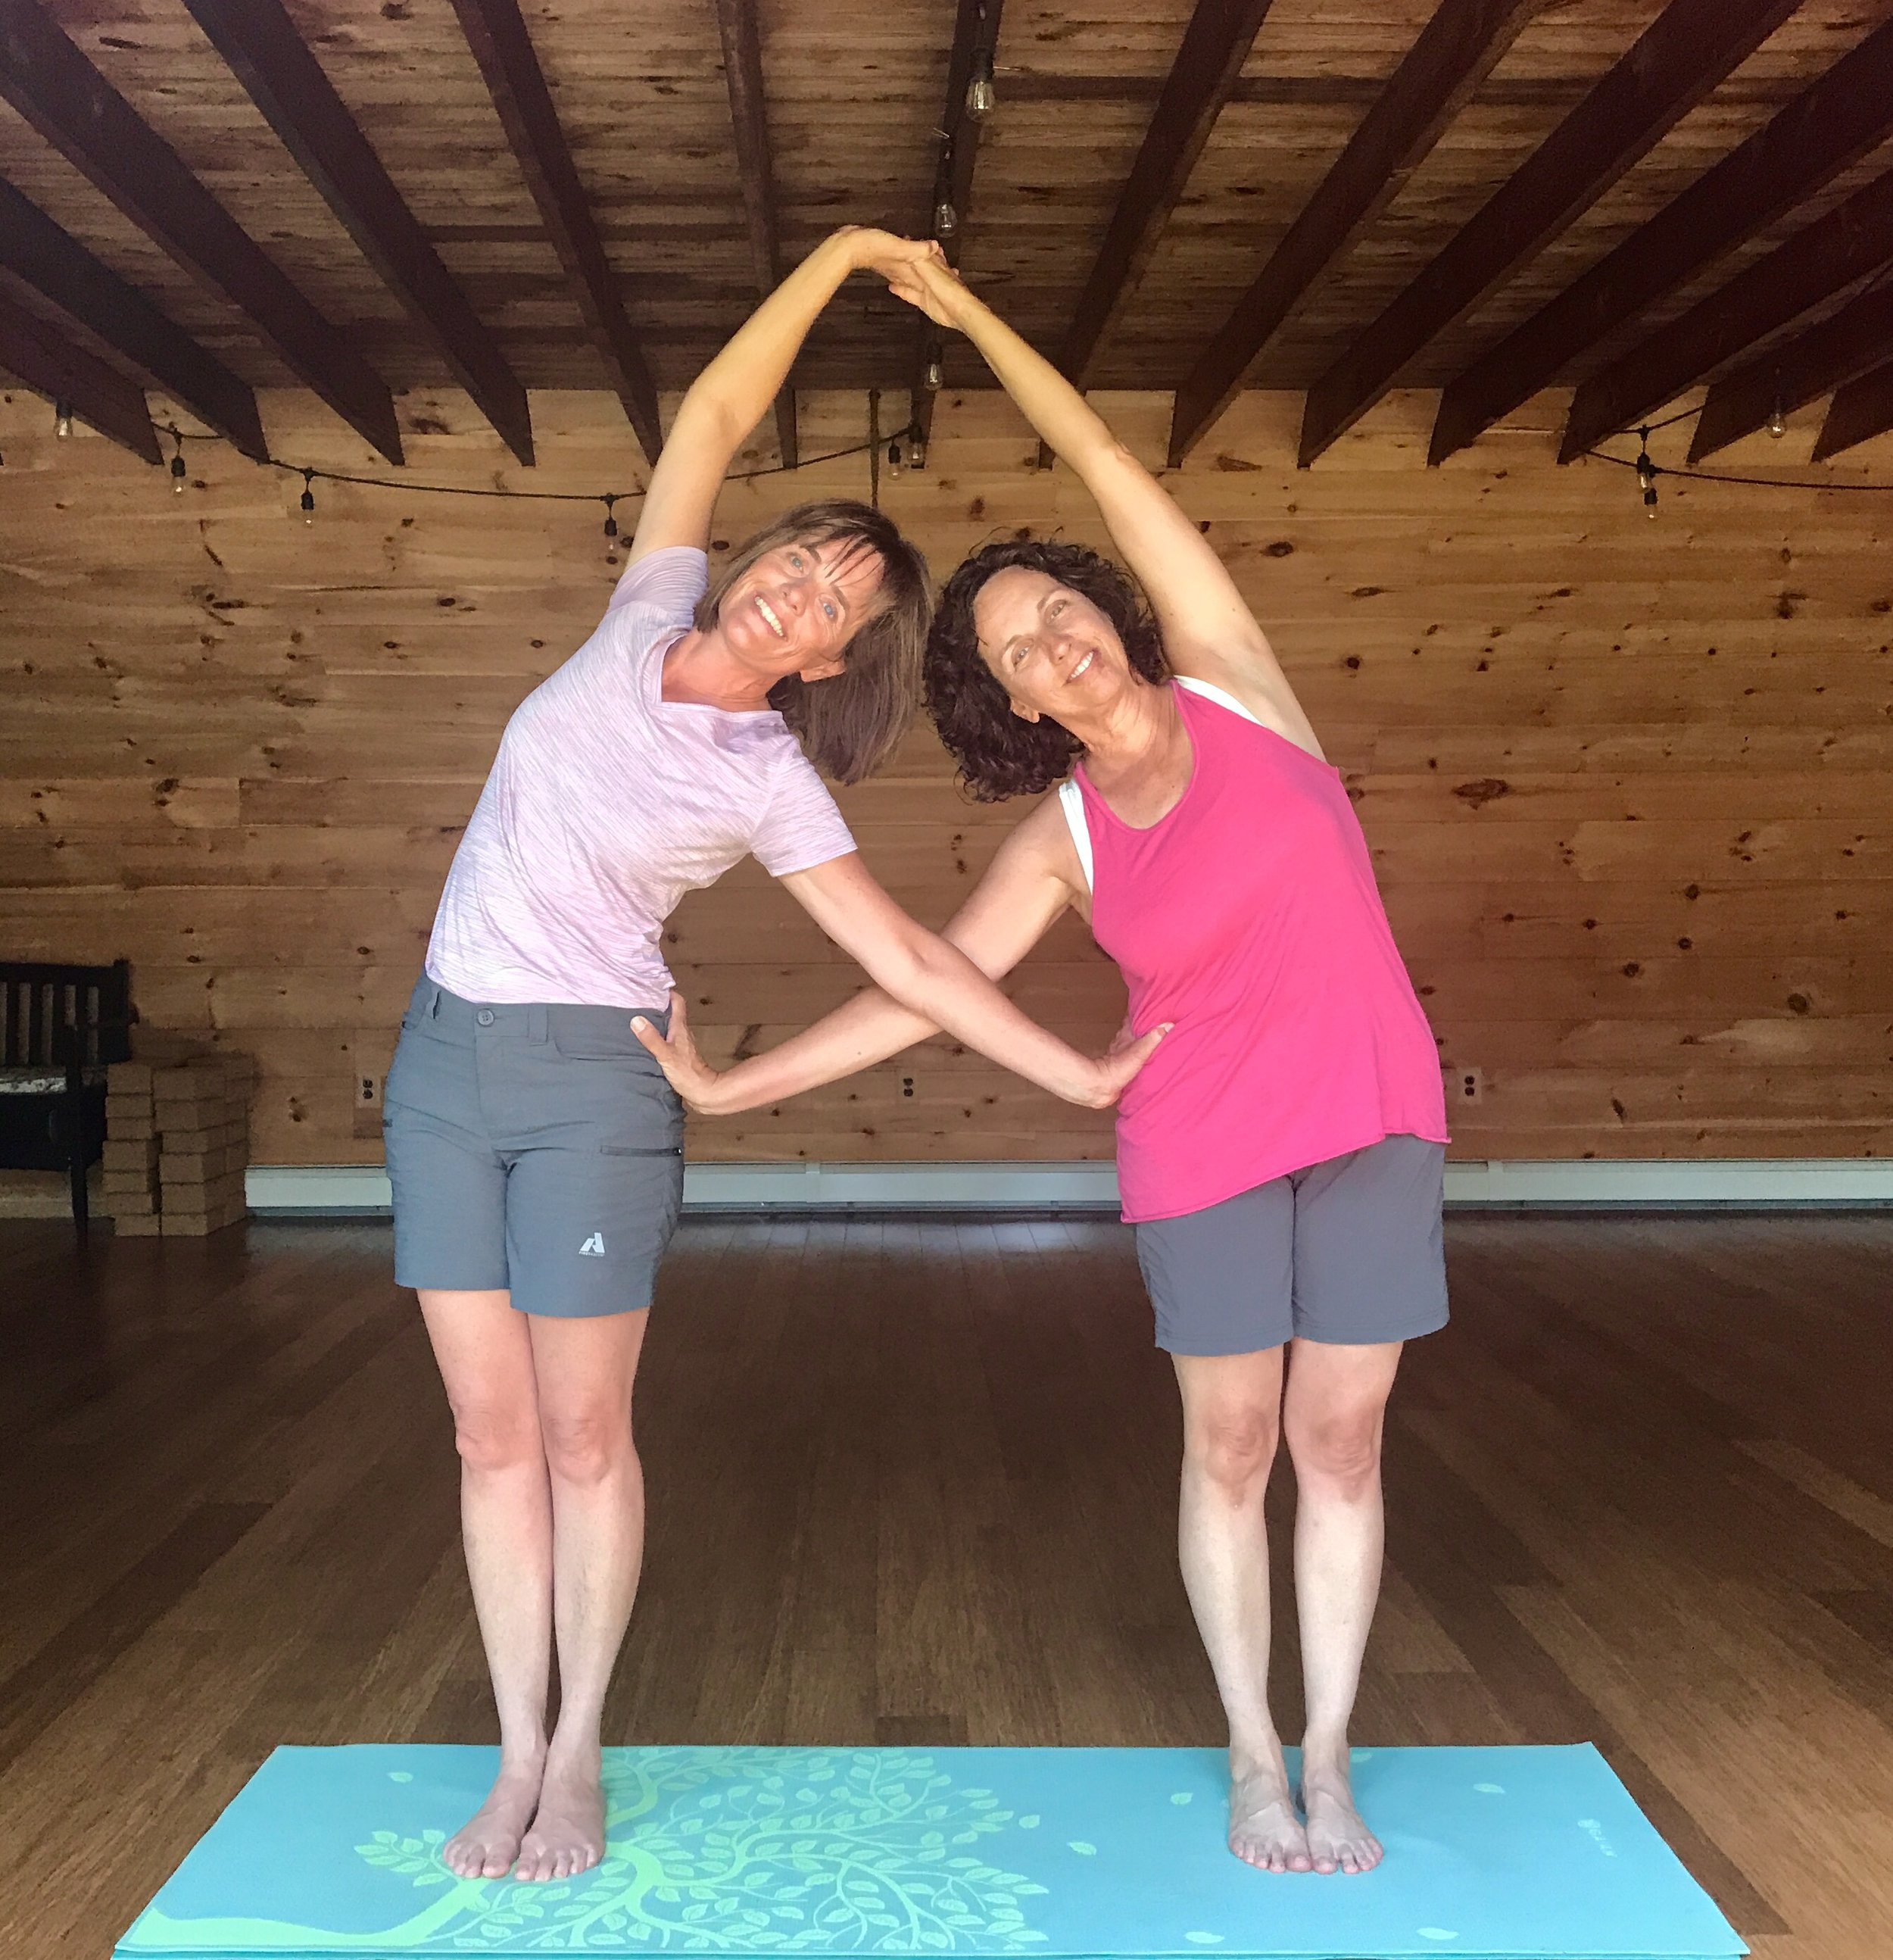 Your Team - Long time friends and soul sisters, Joanie Fisler and Alison Ritrovato have teamed up again to bring you this fantastic Mindful Adventure